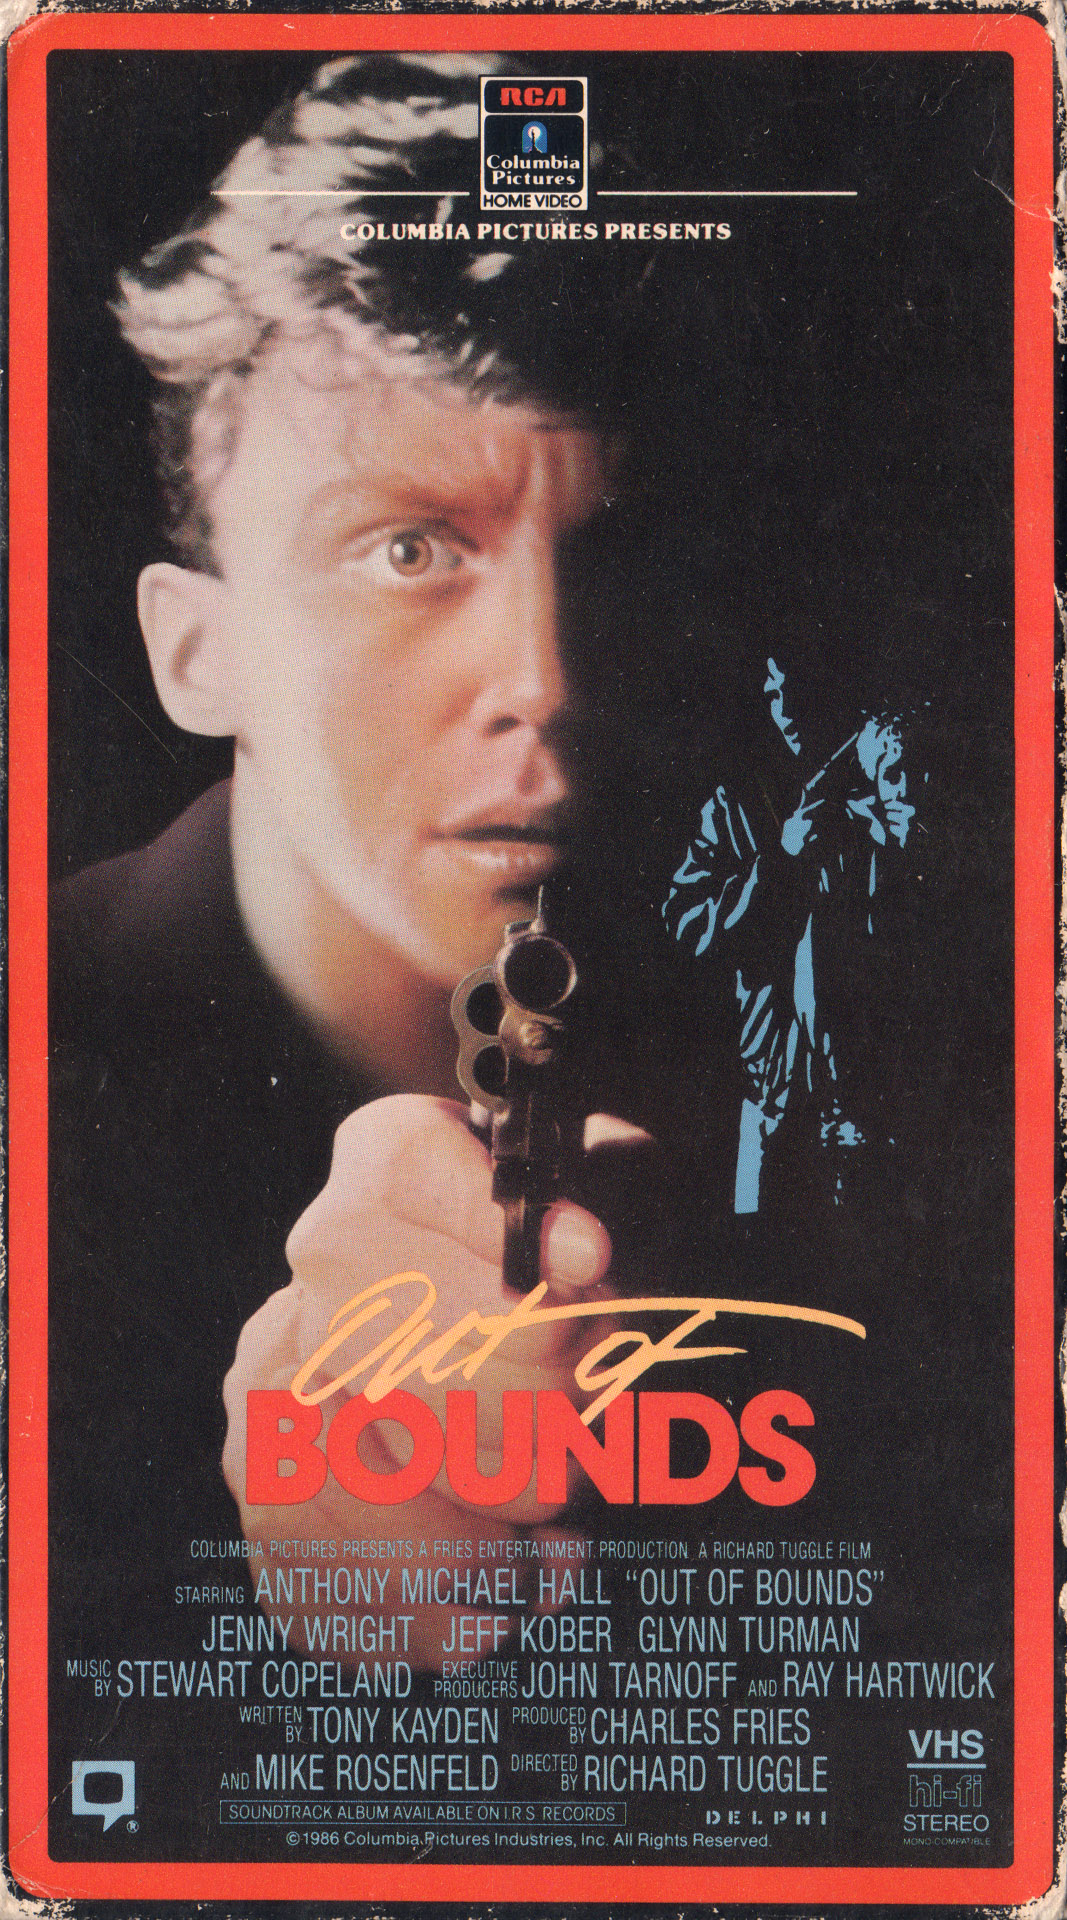 Out of Bounds (1986) Action, Crime, Thriller - R : Farm boy Daryl Cage's parents ship him off to the big city to live with his brother, hoping he will have a better life there. After a baggage mixup at the airport, Daryl finds himself in possession of a drug cache, which a ruthless drug dealer wants back. The dealer murders Daryl's brother and the small town boy ends up all alone in the big city, being pursued by both the drug dealer and the police, who suspect him of the murder.